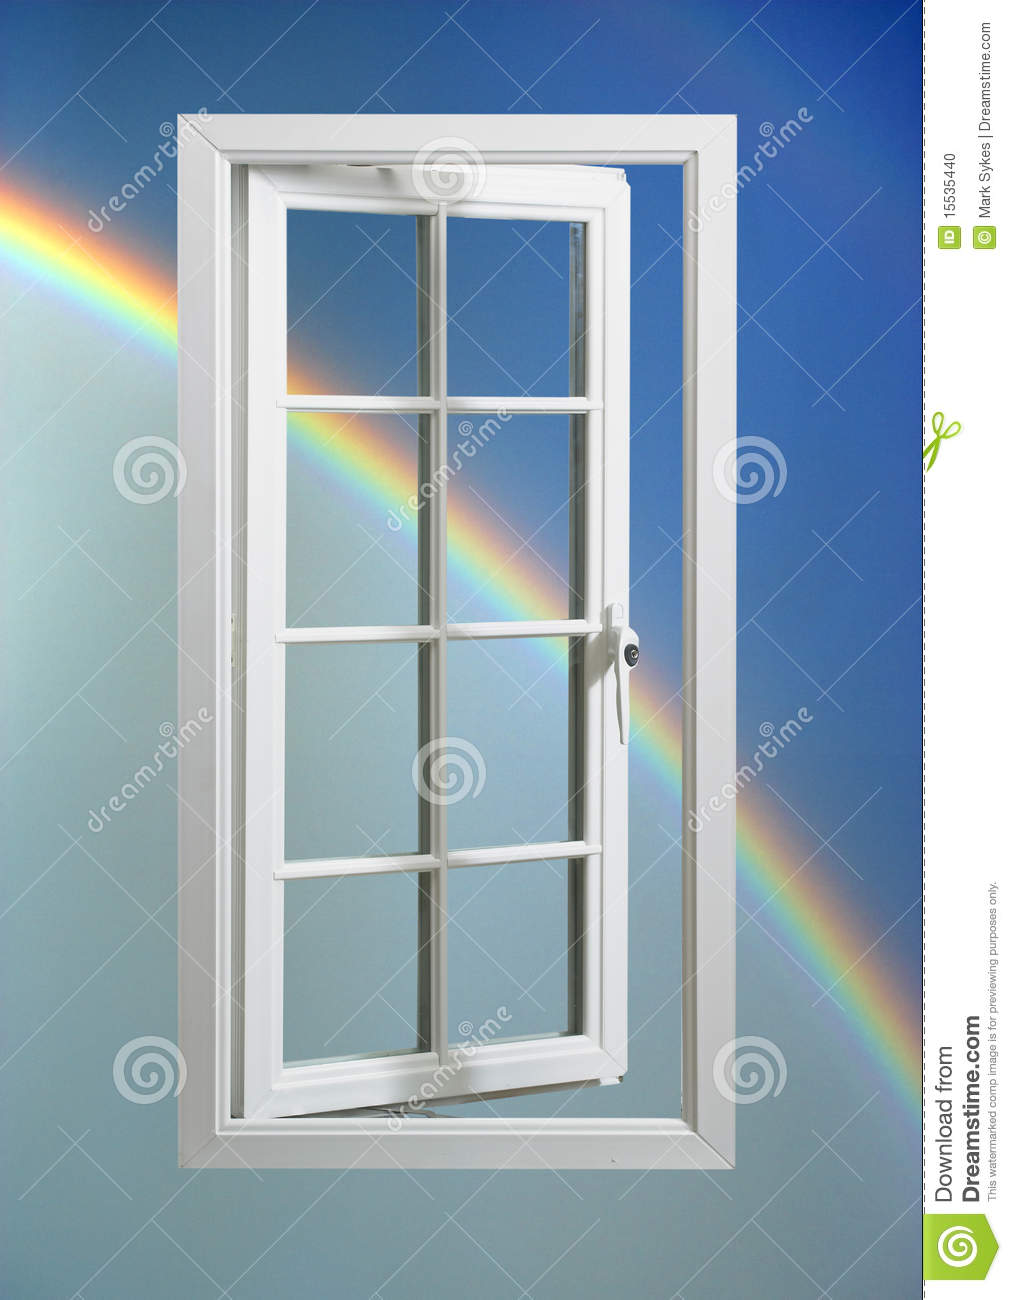 Modern white window frame in blue sky with rainbow stock for Pvc window frame